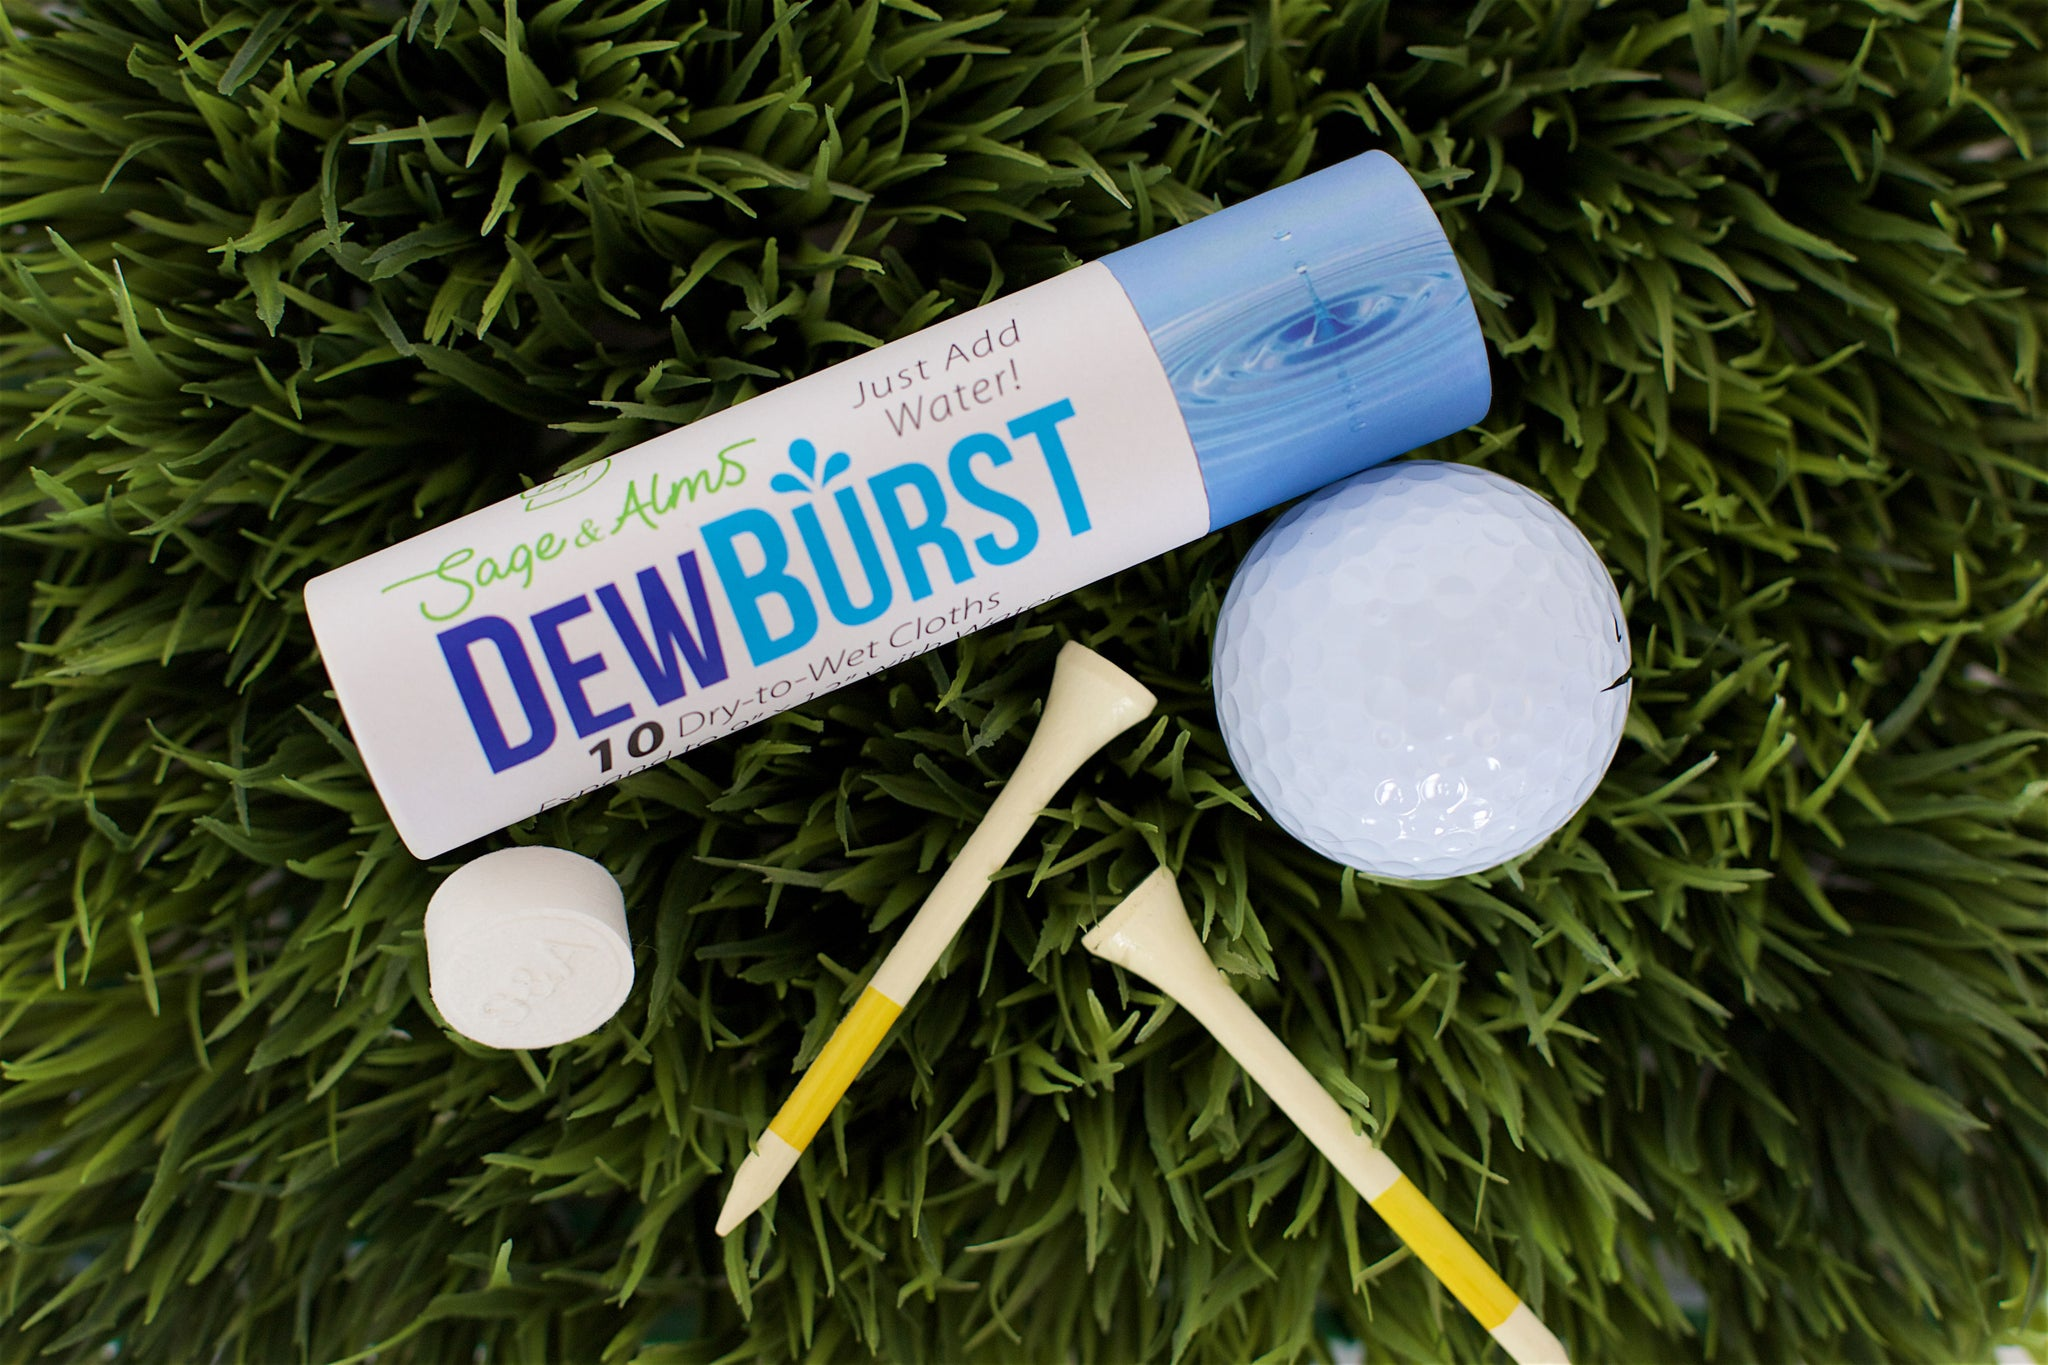 One Display Unit | 24 Tubes | 240 Clothes | DewBurst | $1.87 Per Tube